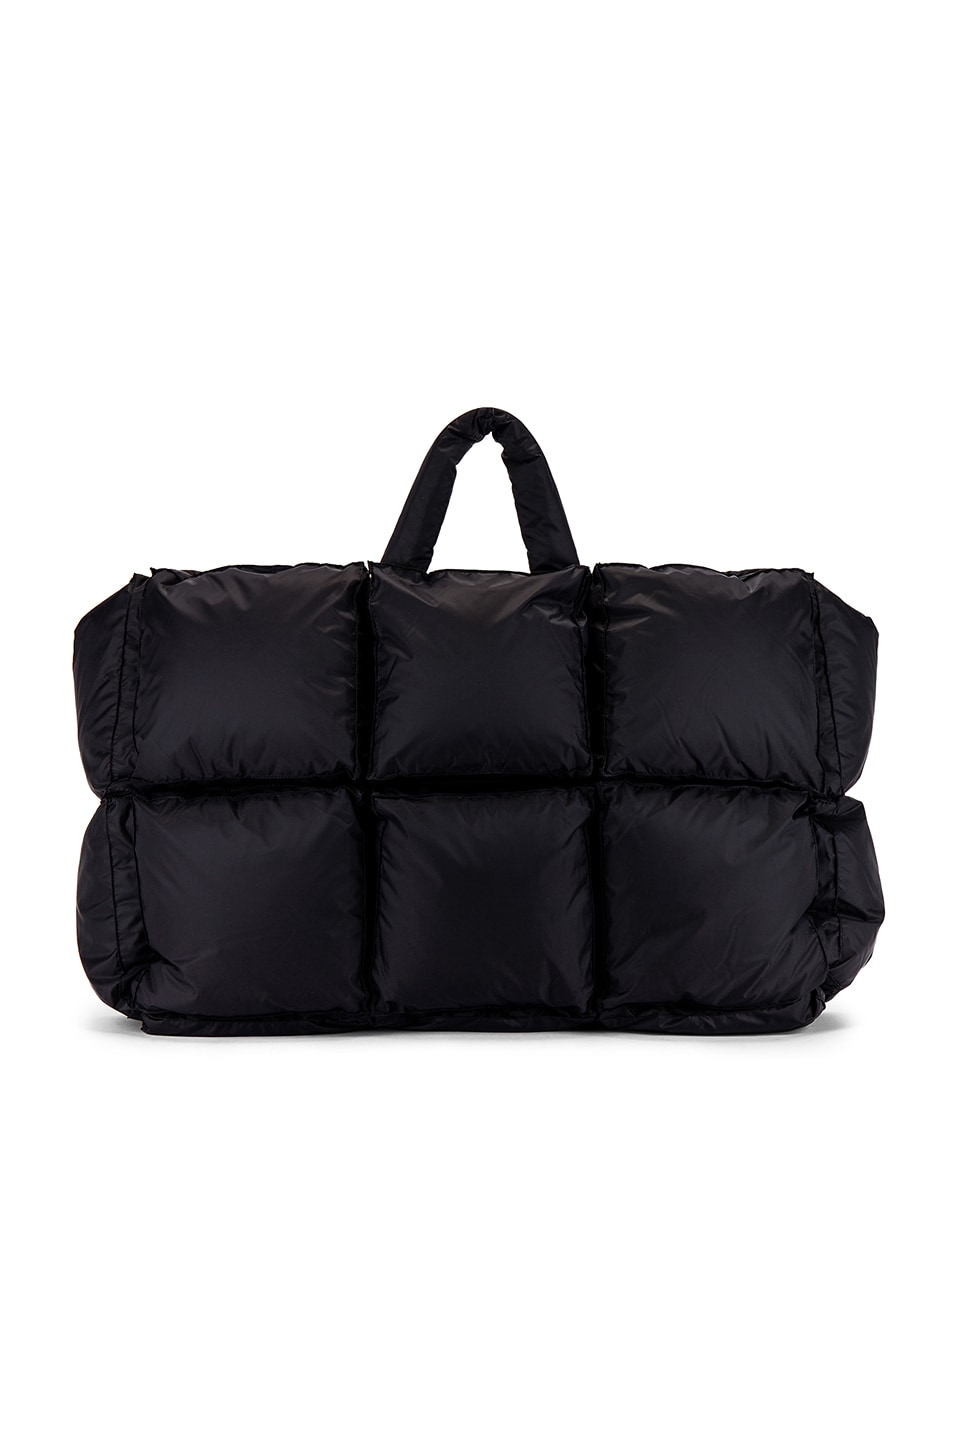 OFF-WHITE Puffy Nylon Bag in Anthracite